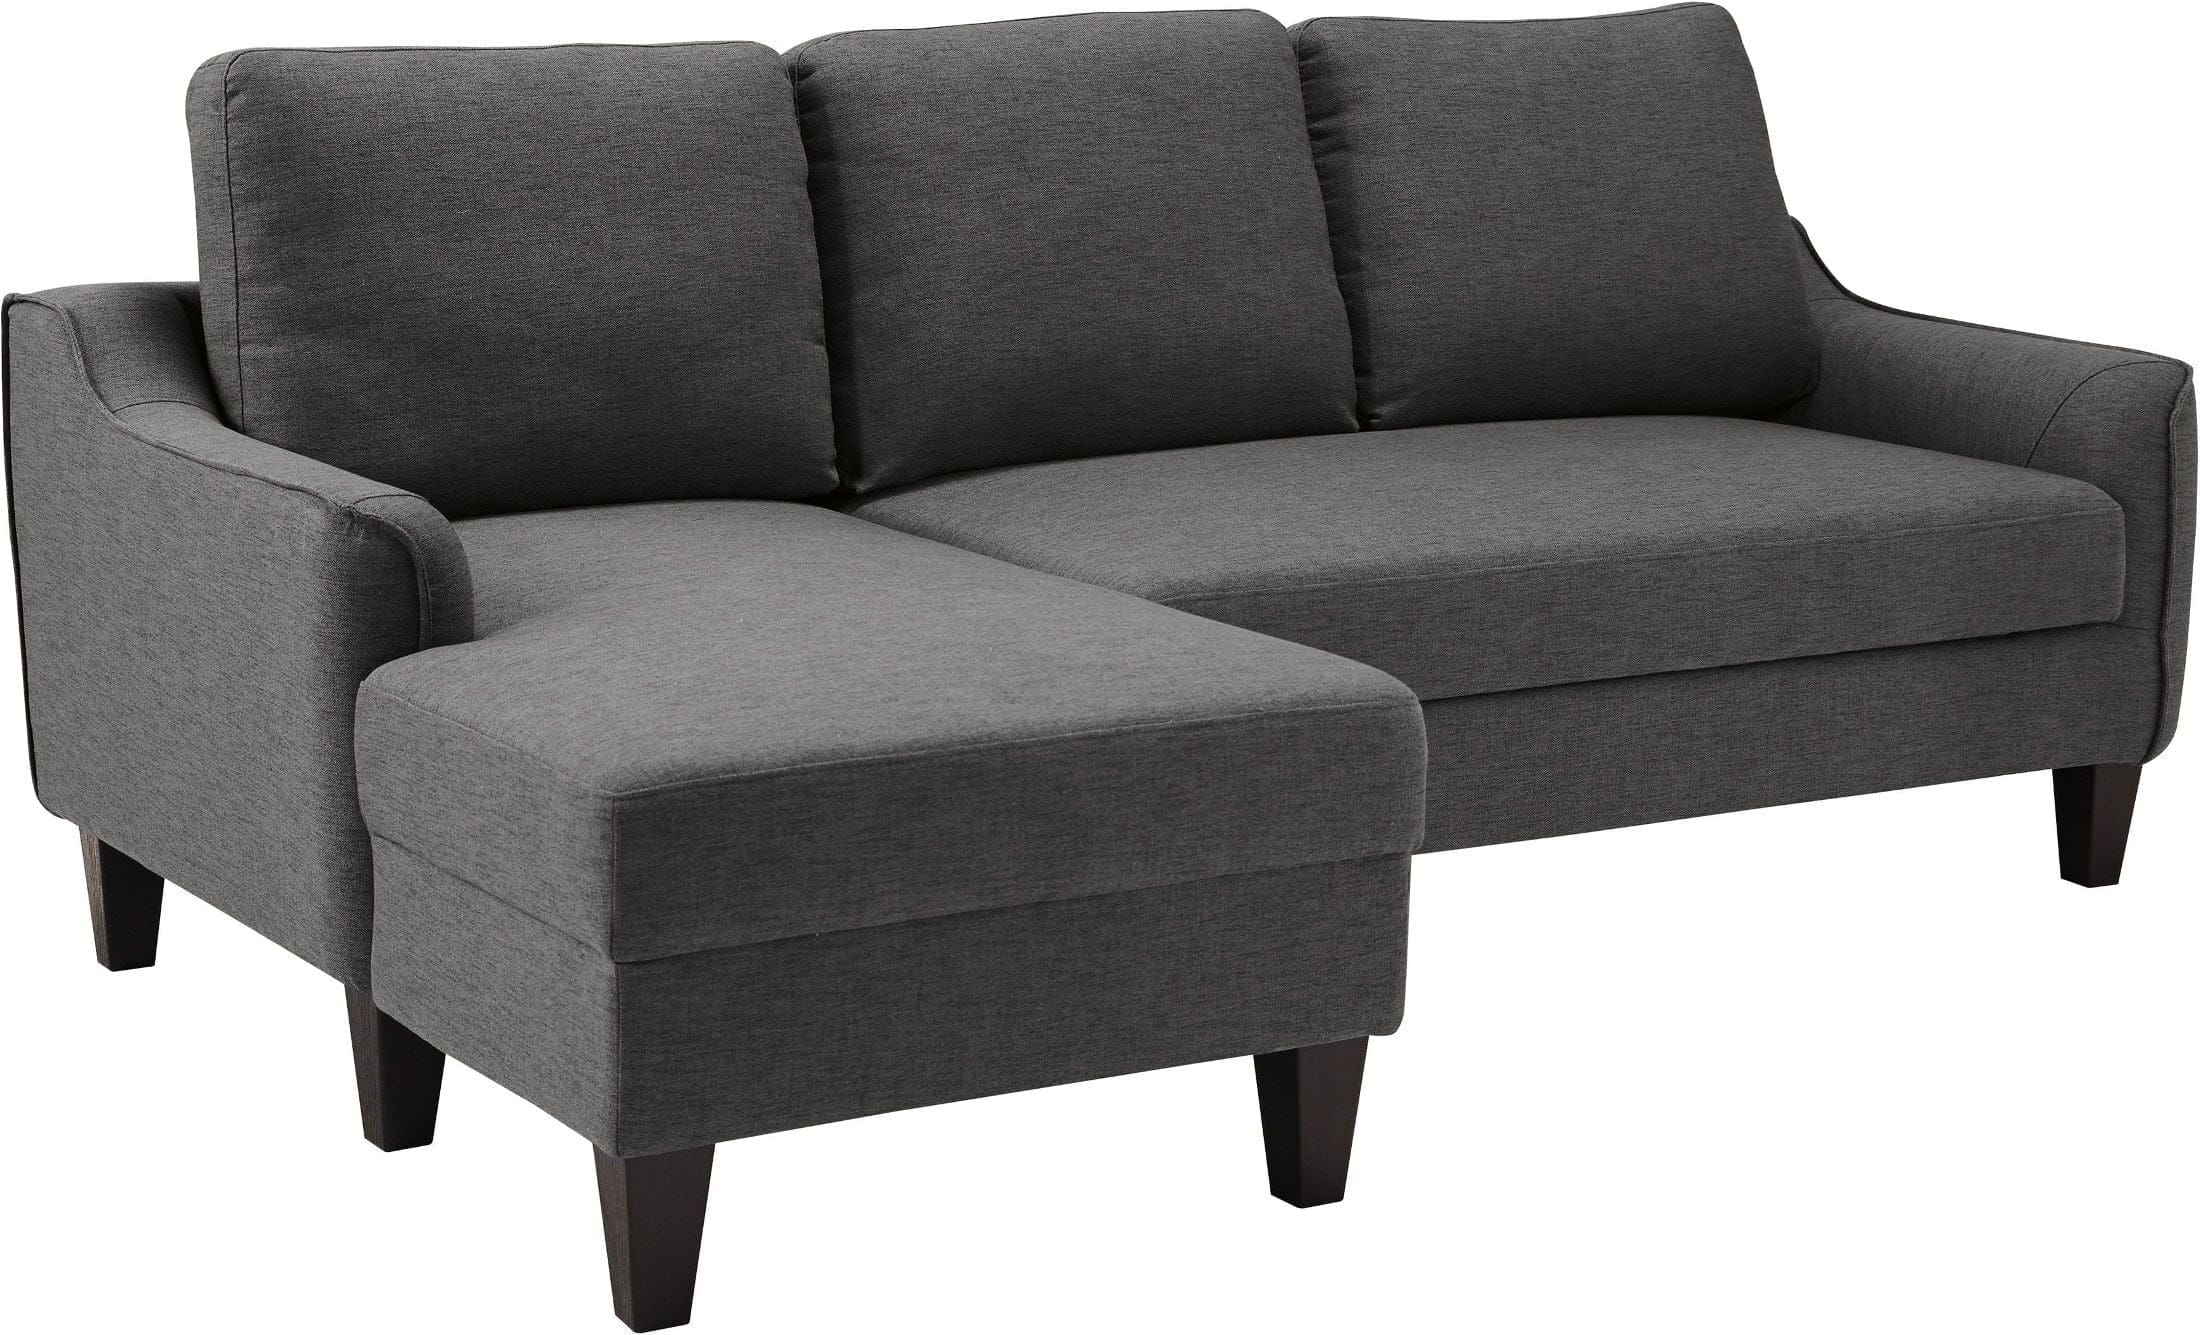 Marseille Queen Sofa Sleeper Gray Signature Design by Ashley Furniture